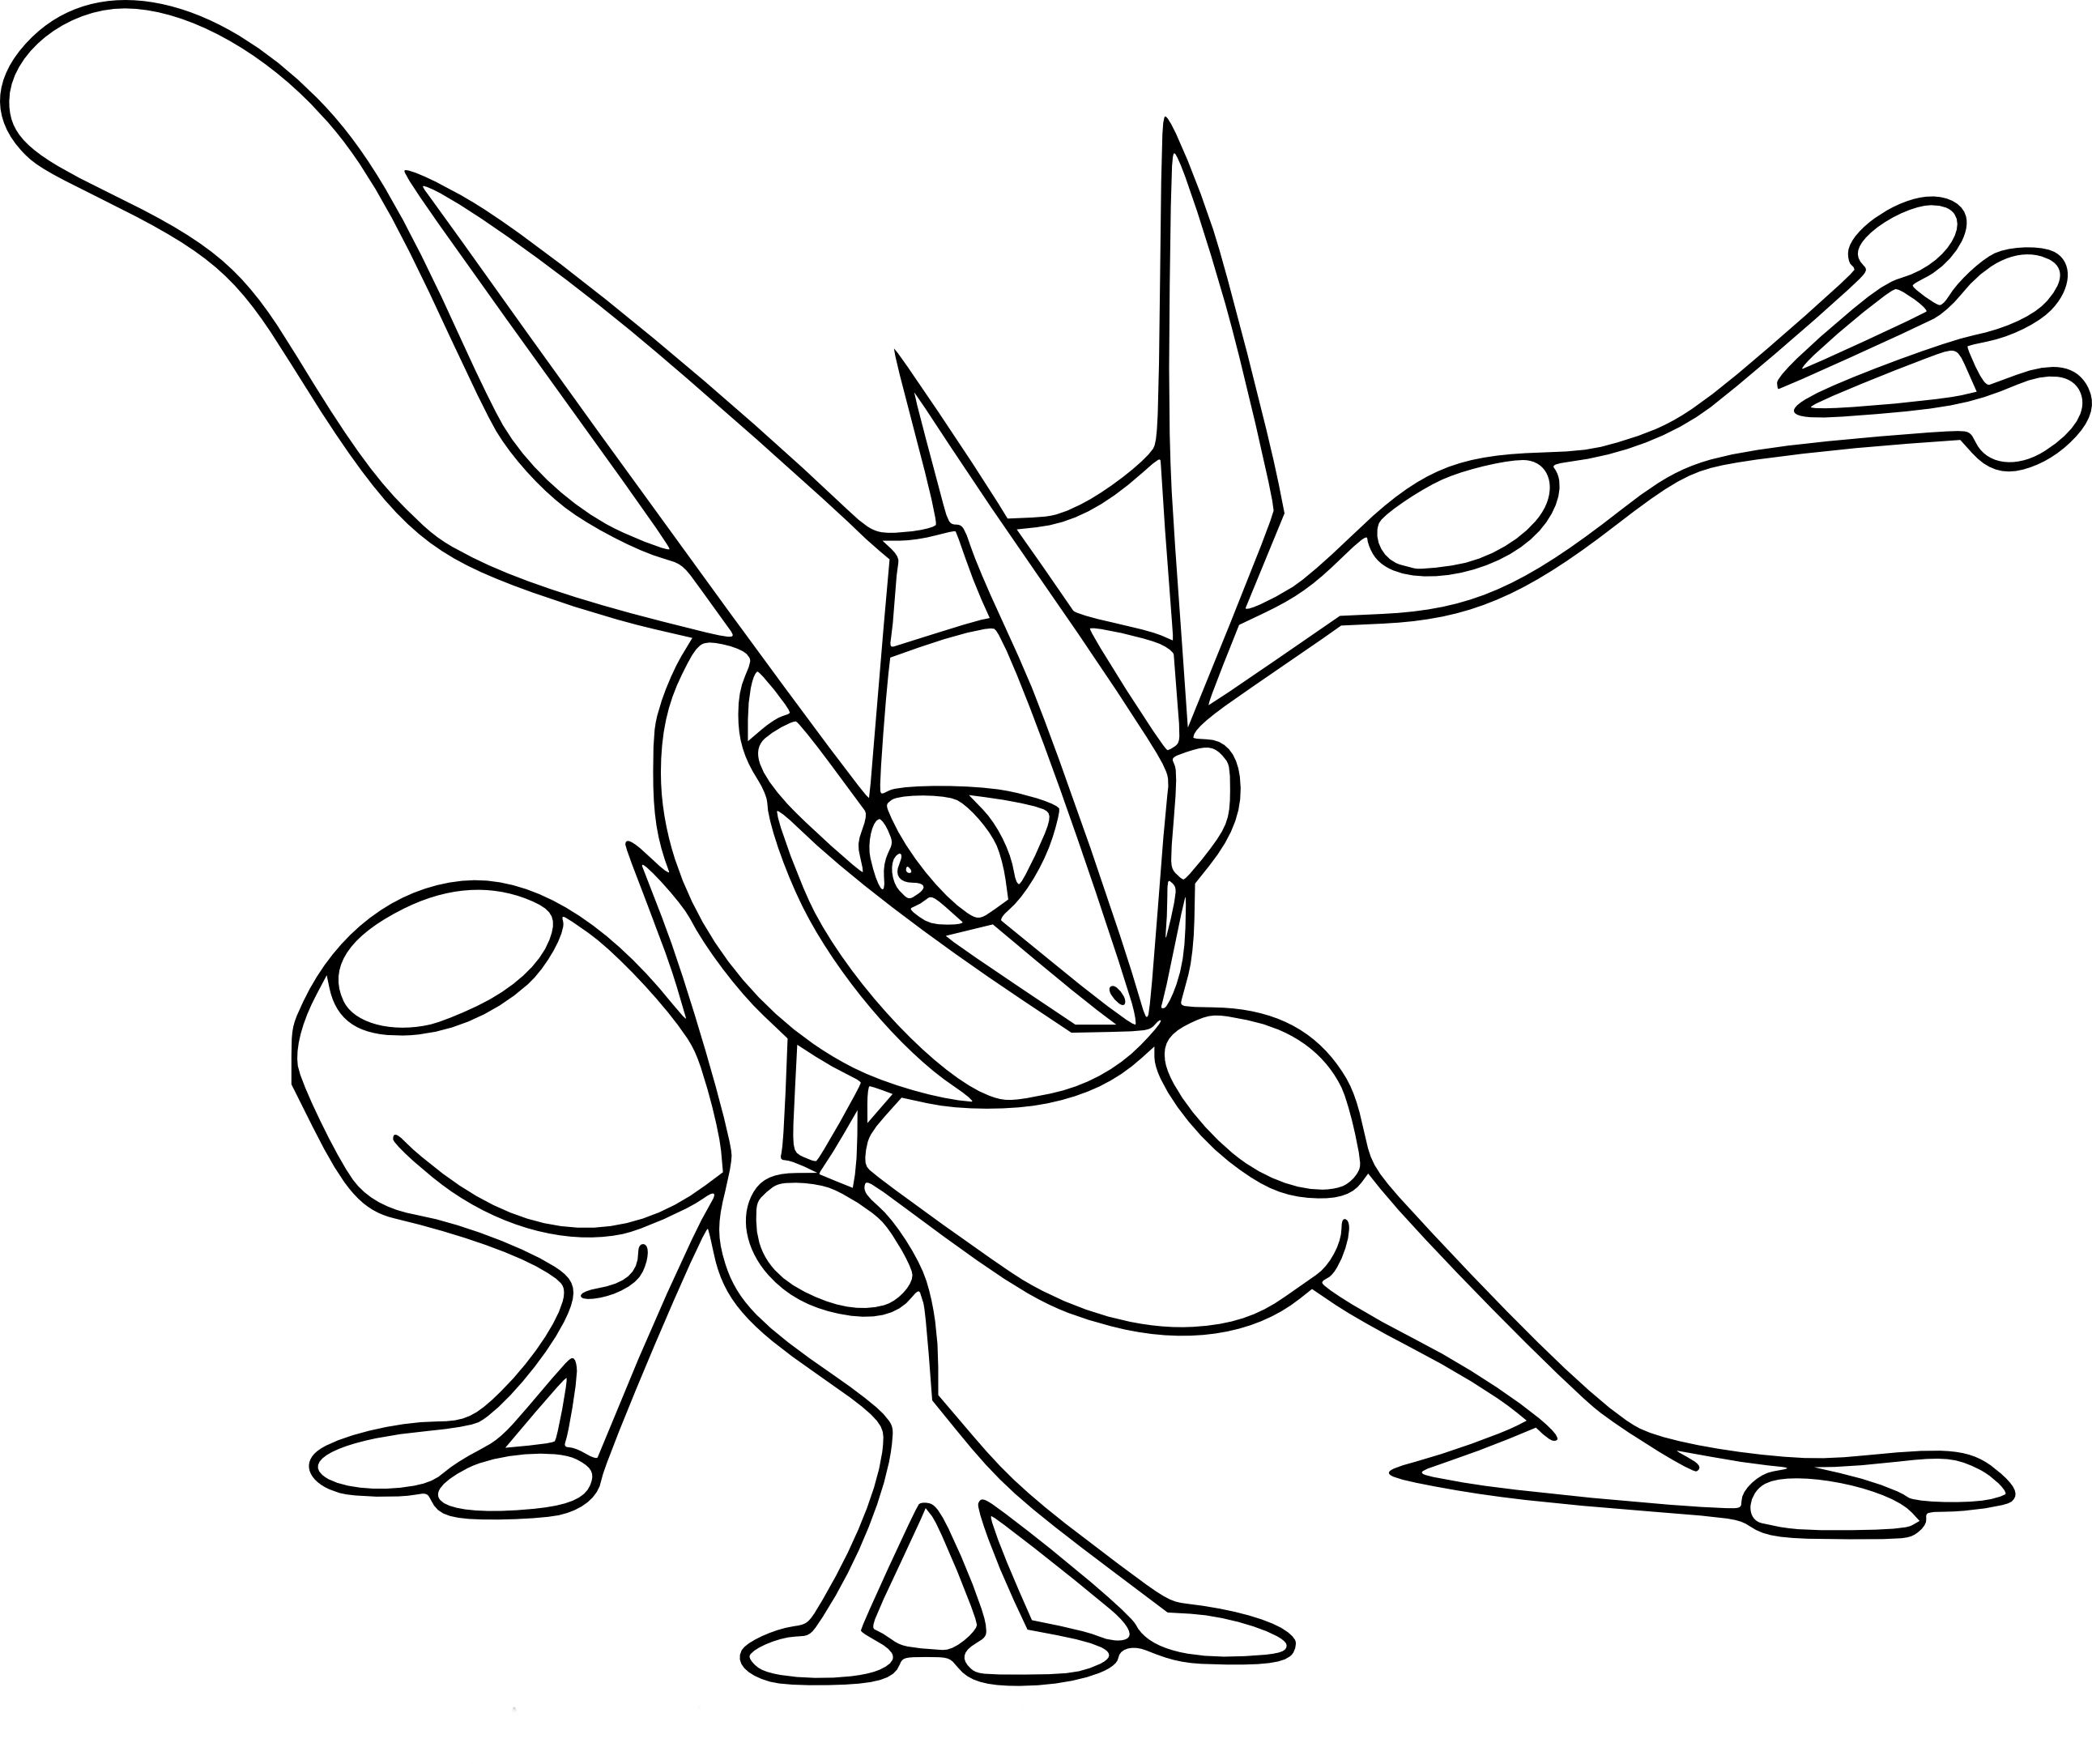 Greninja Coloring Page Coloring Pages Coloring Page Of The Pokemon